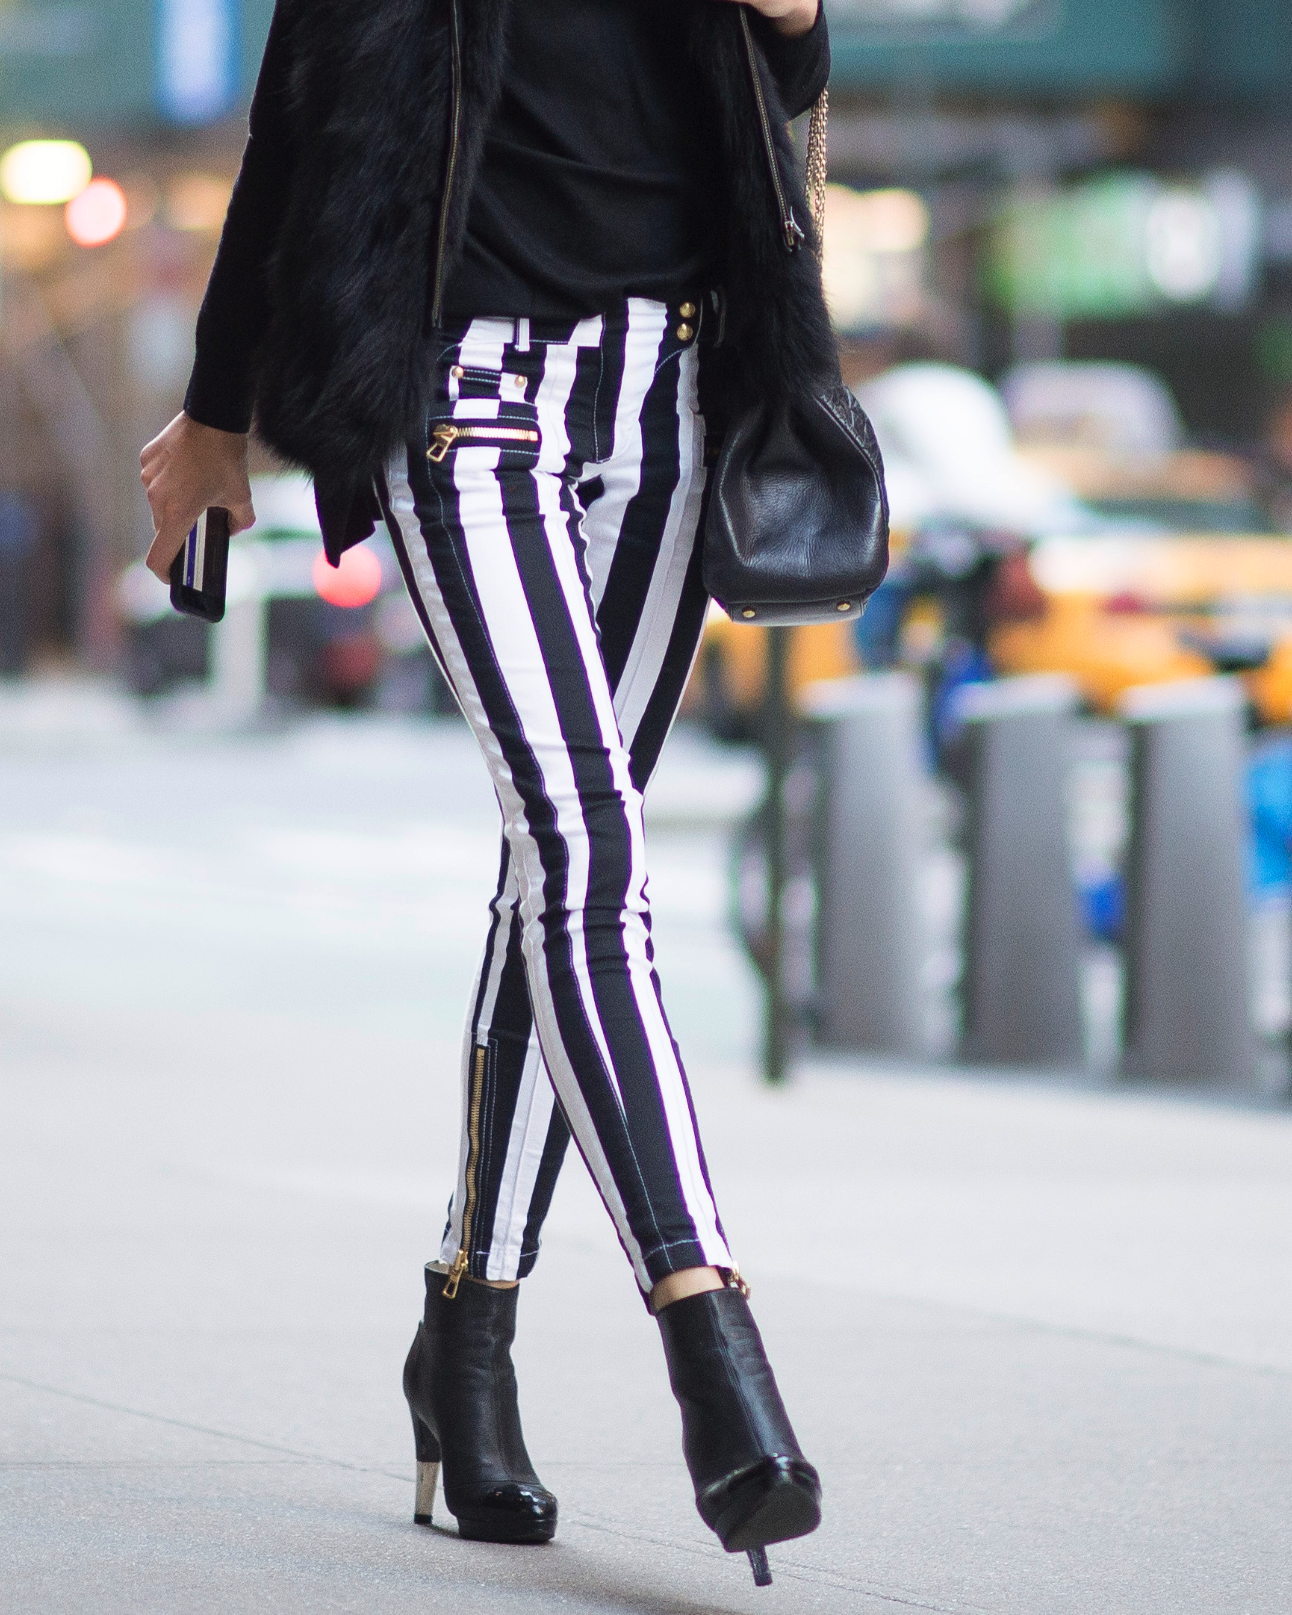 Shoes that are owning the street style scene